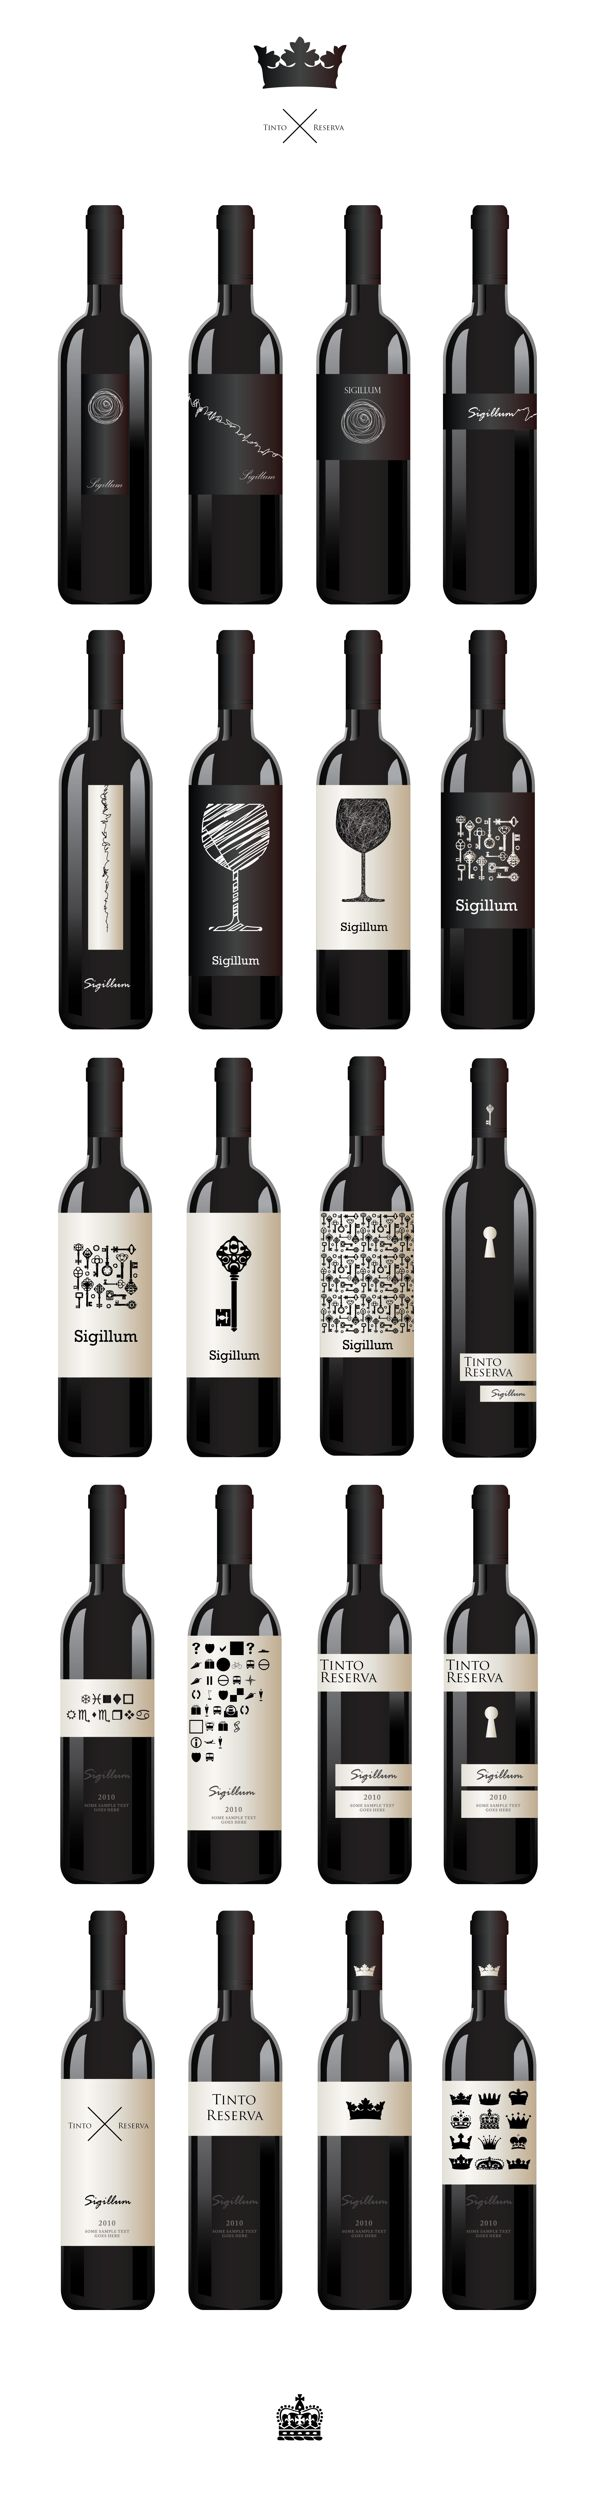 Via Behance. #wine #bottle designs.